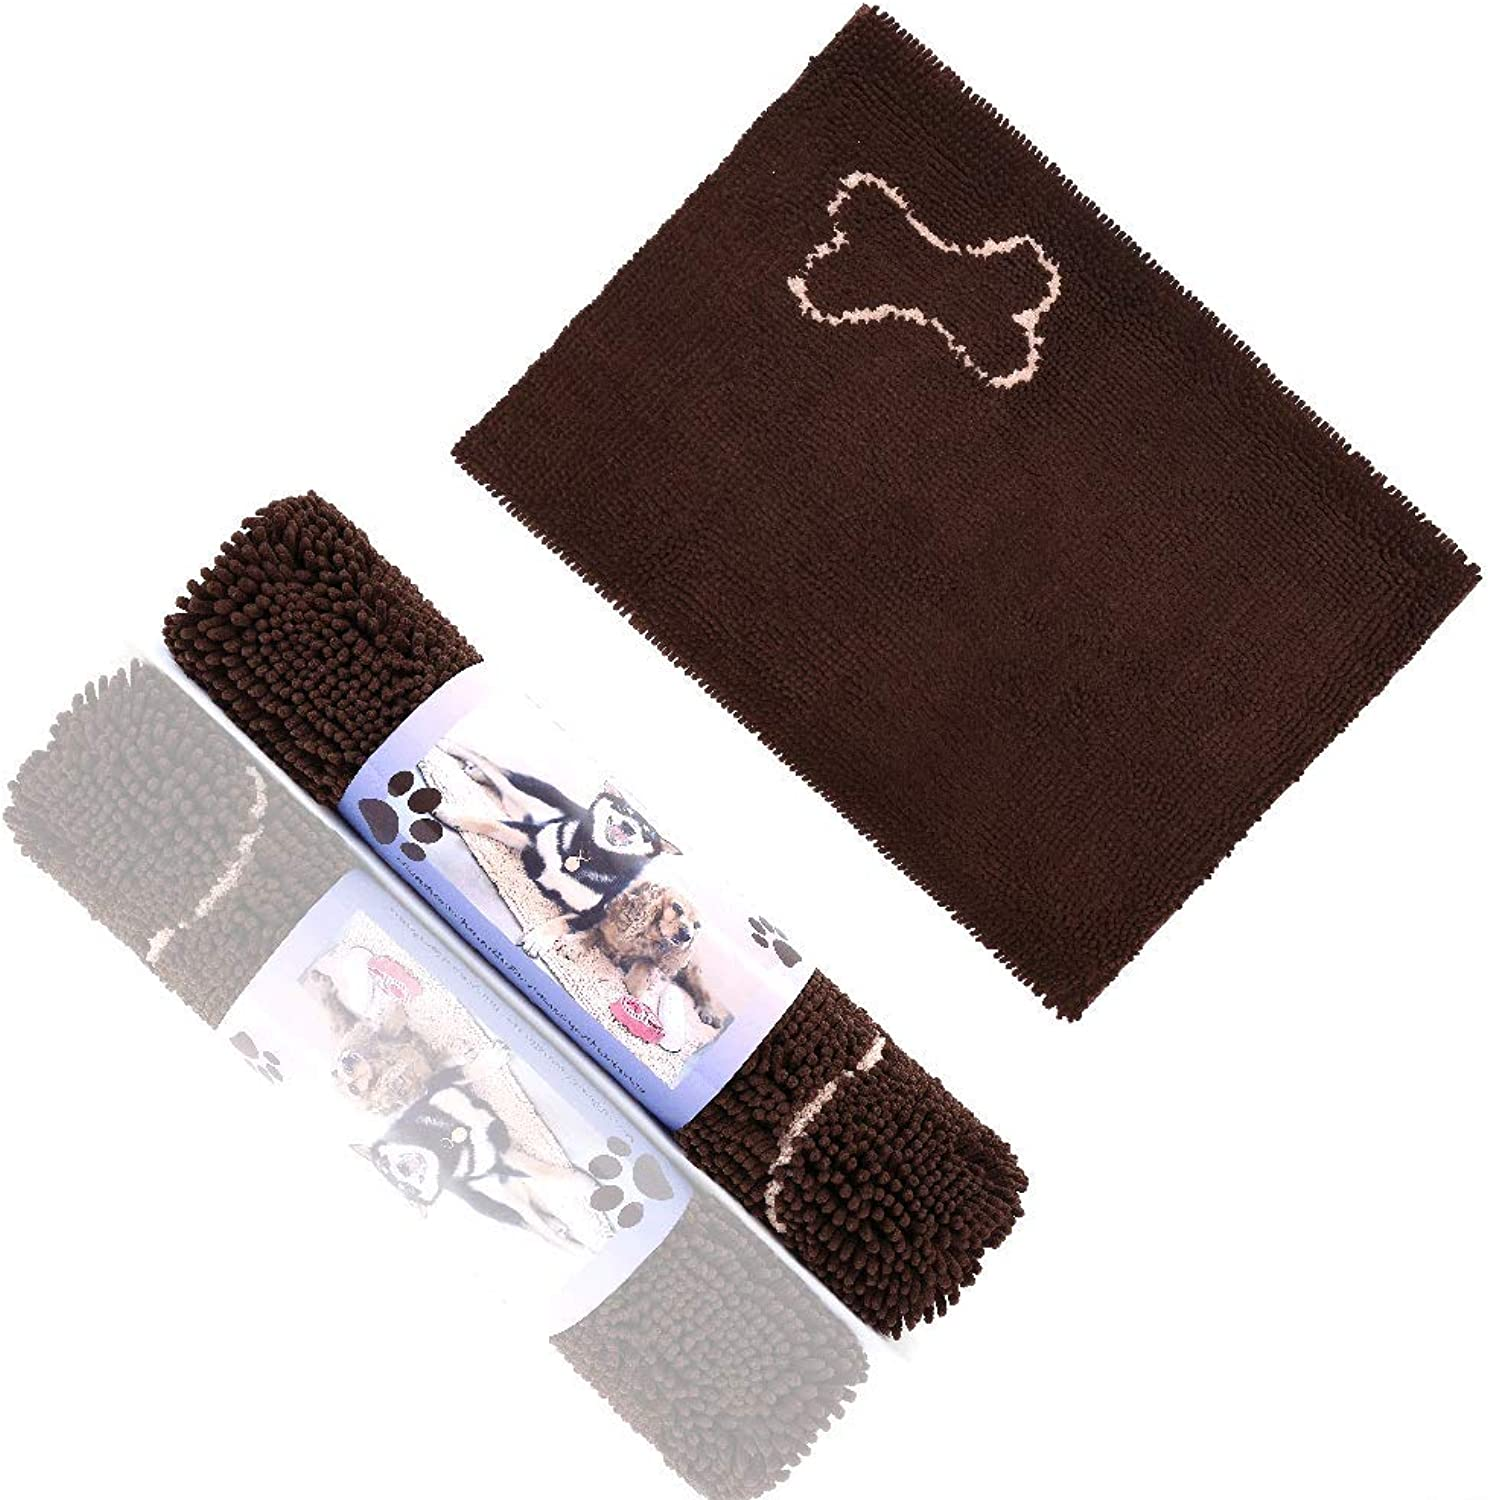 Microfiber Dog Door Runner Mat  Ultra Absorption Washable Dirty Dog Doormat No Slip Backing XLarge Size 152cm76cm  60 30  Pet Clean Paws Scruffs Noodle Dry Mat Chocolate color